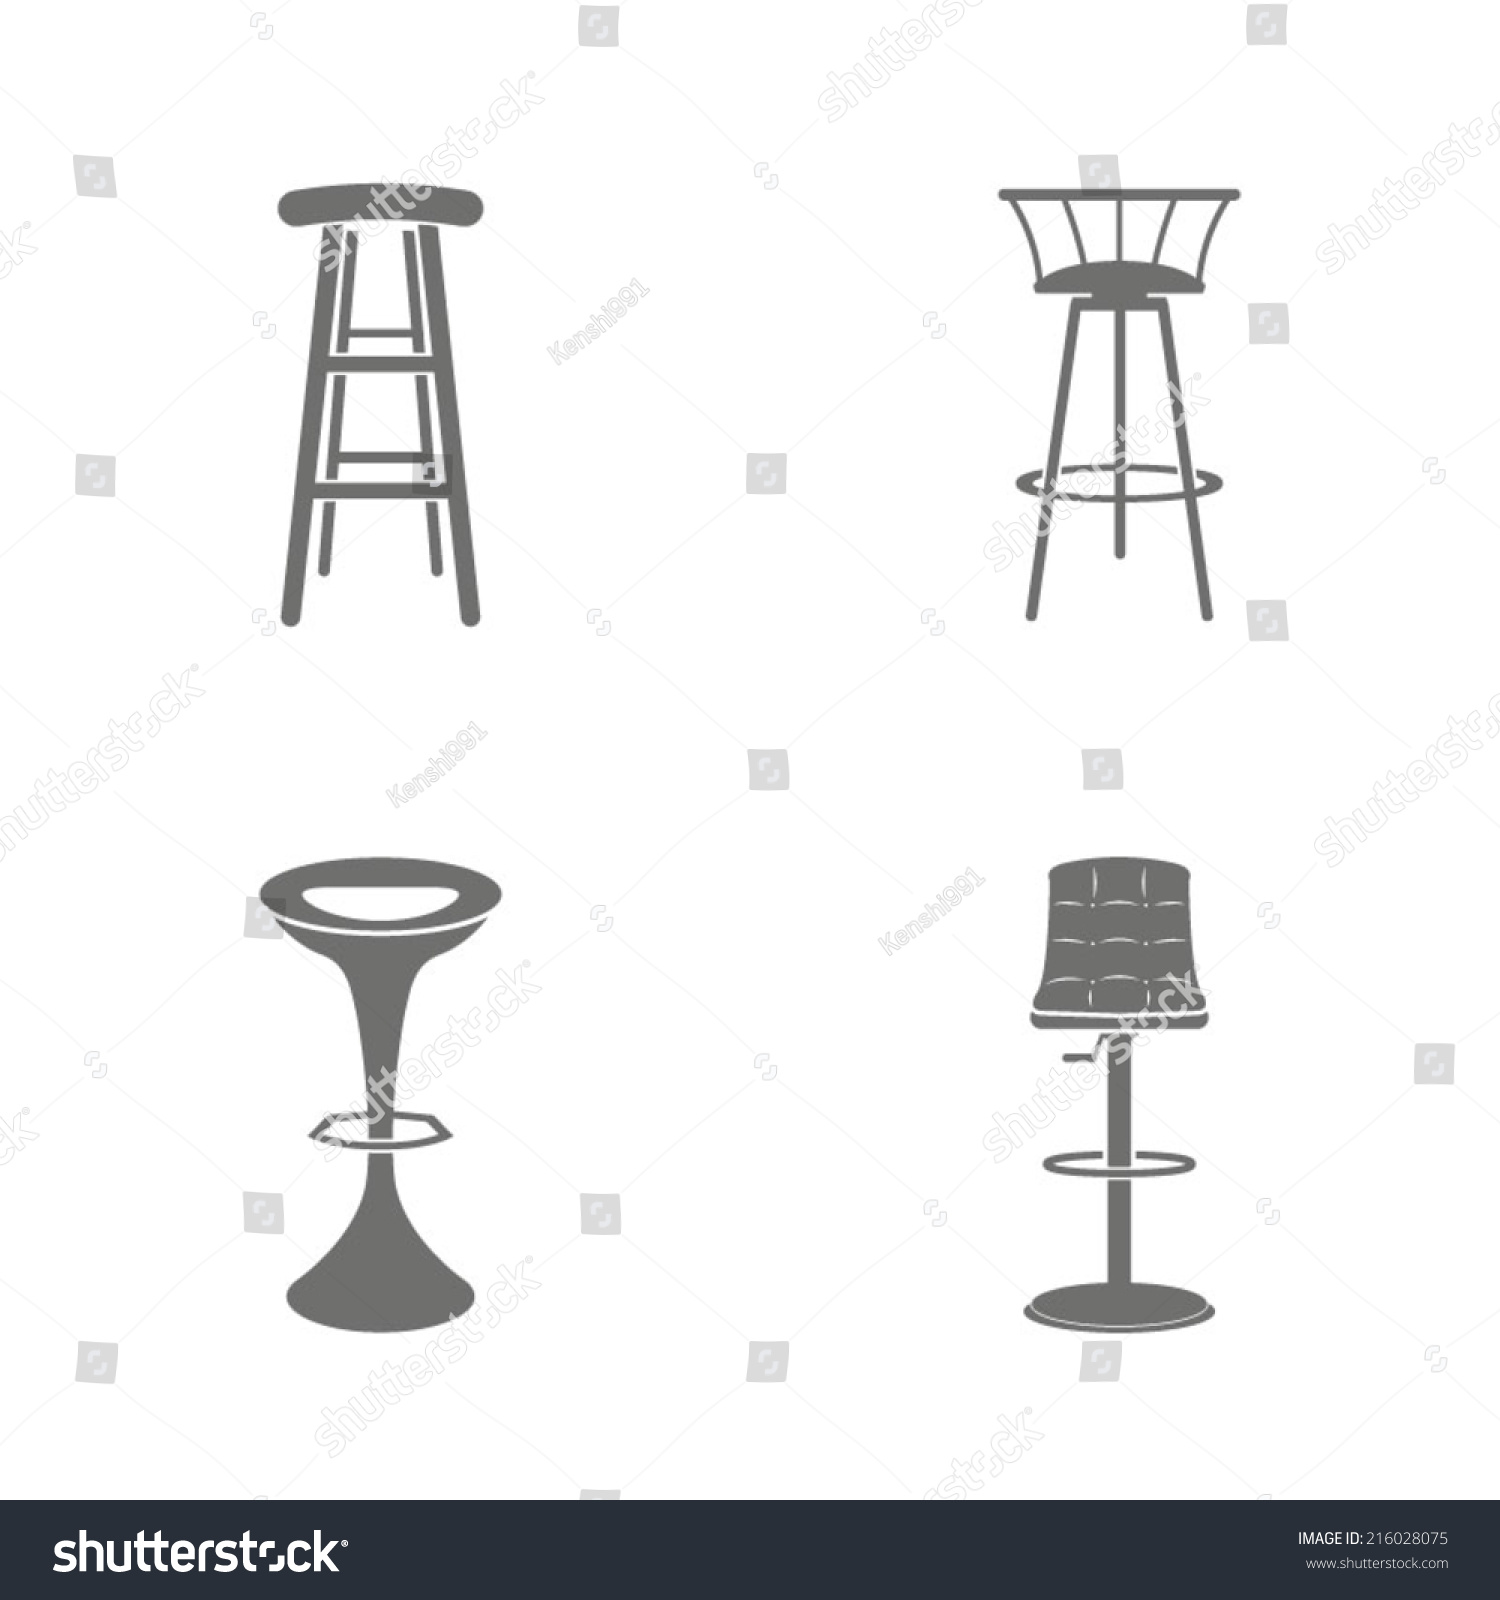 Set Of Four Bar Stool Icons Stock Vector Illustration  : stock vector set of four bar stool icons 216028075 from www.shutterstock.com size 1500 x 1600 jpeg 181kB